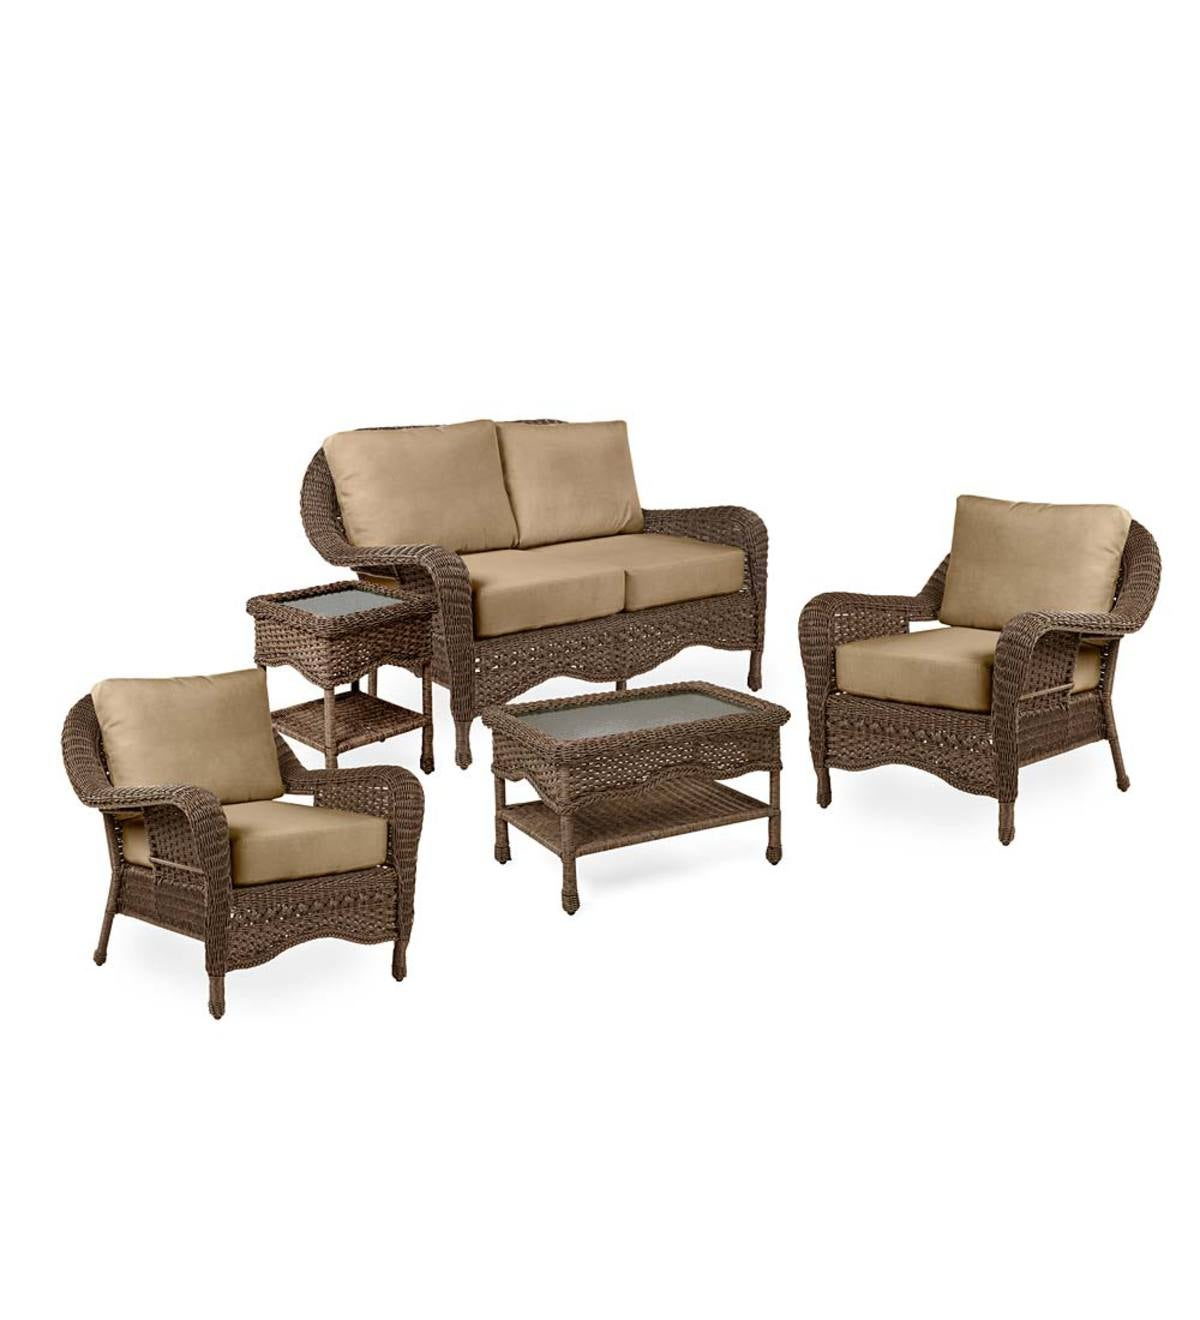 Prospect Hill Outdoor Wicker Deep Seating Love Seat Set with Cushions